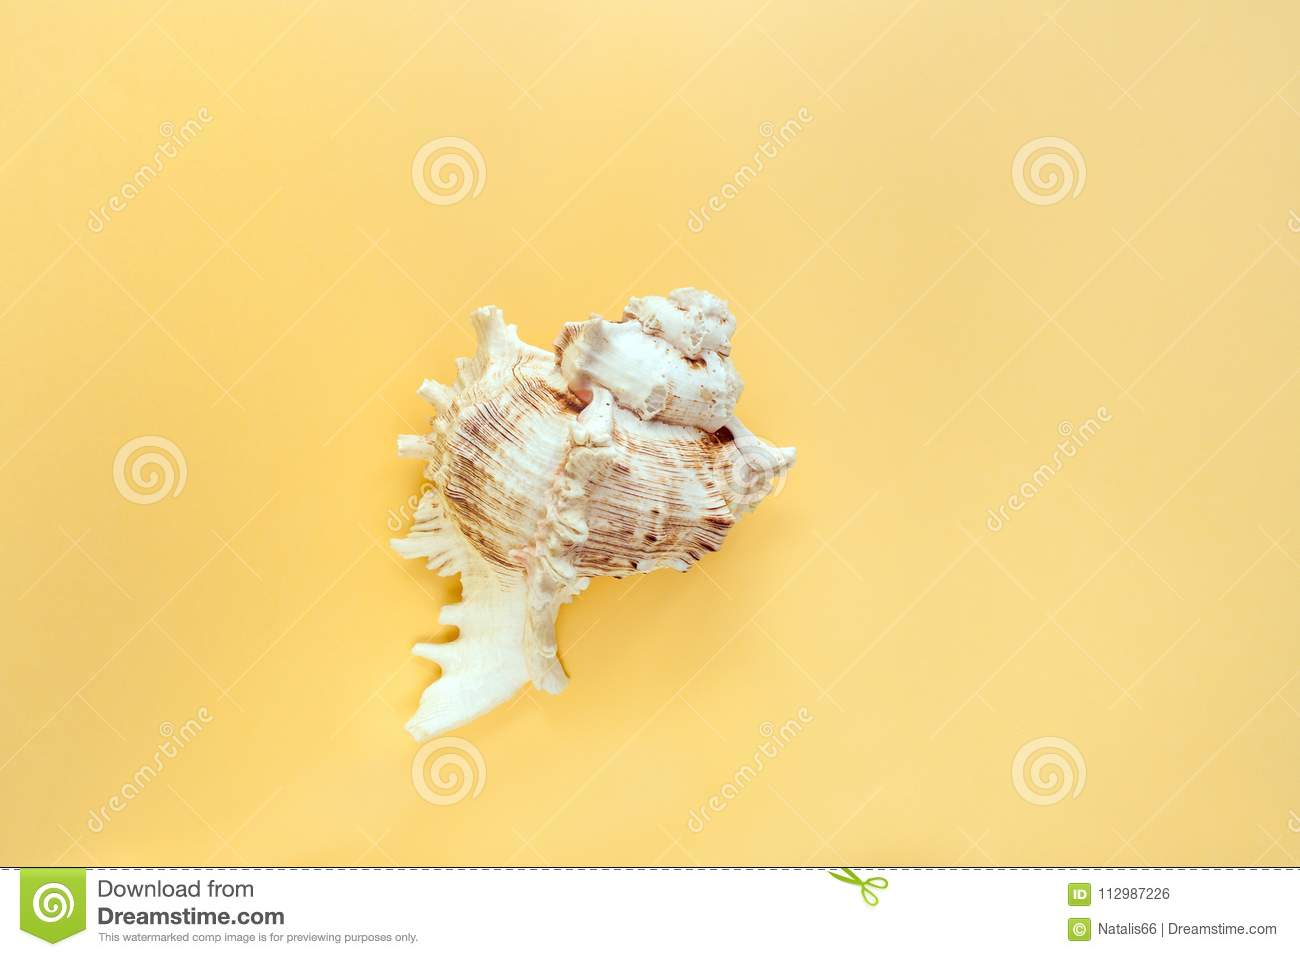 Minimalistic pastel yellow background with one textured carved seashell in the middle.